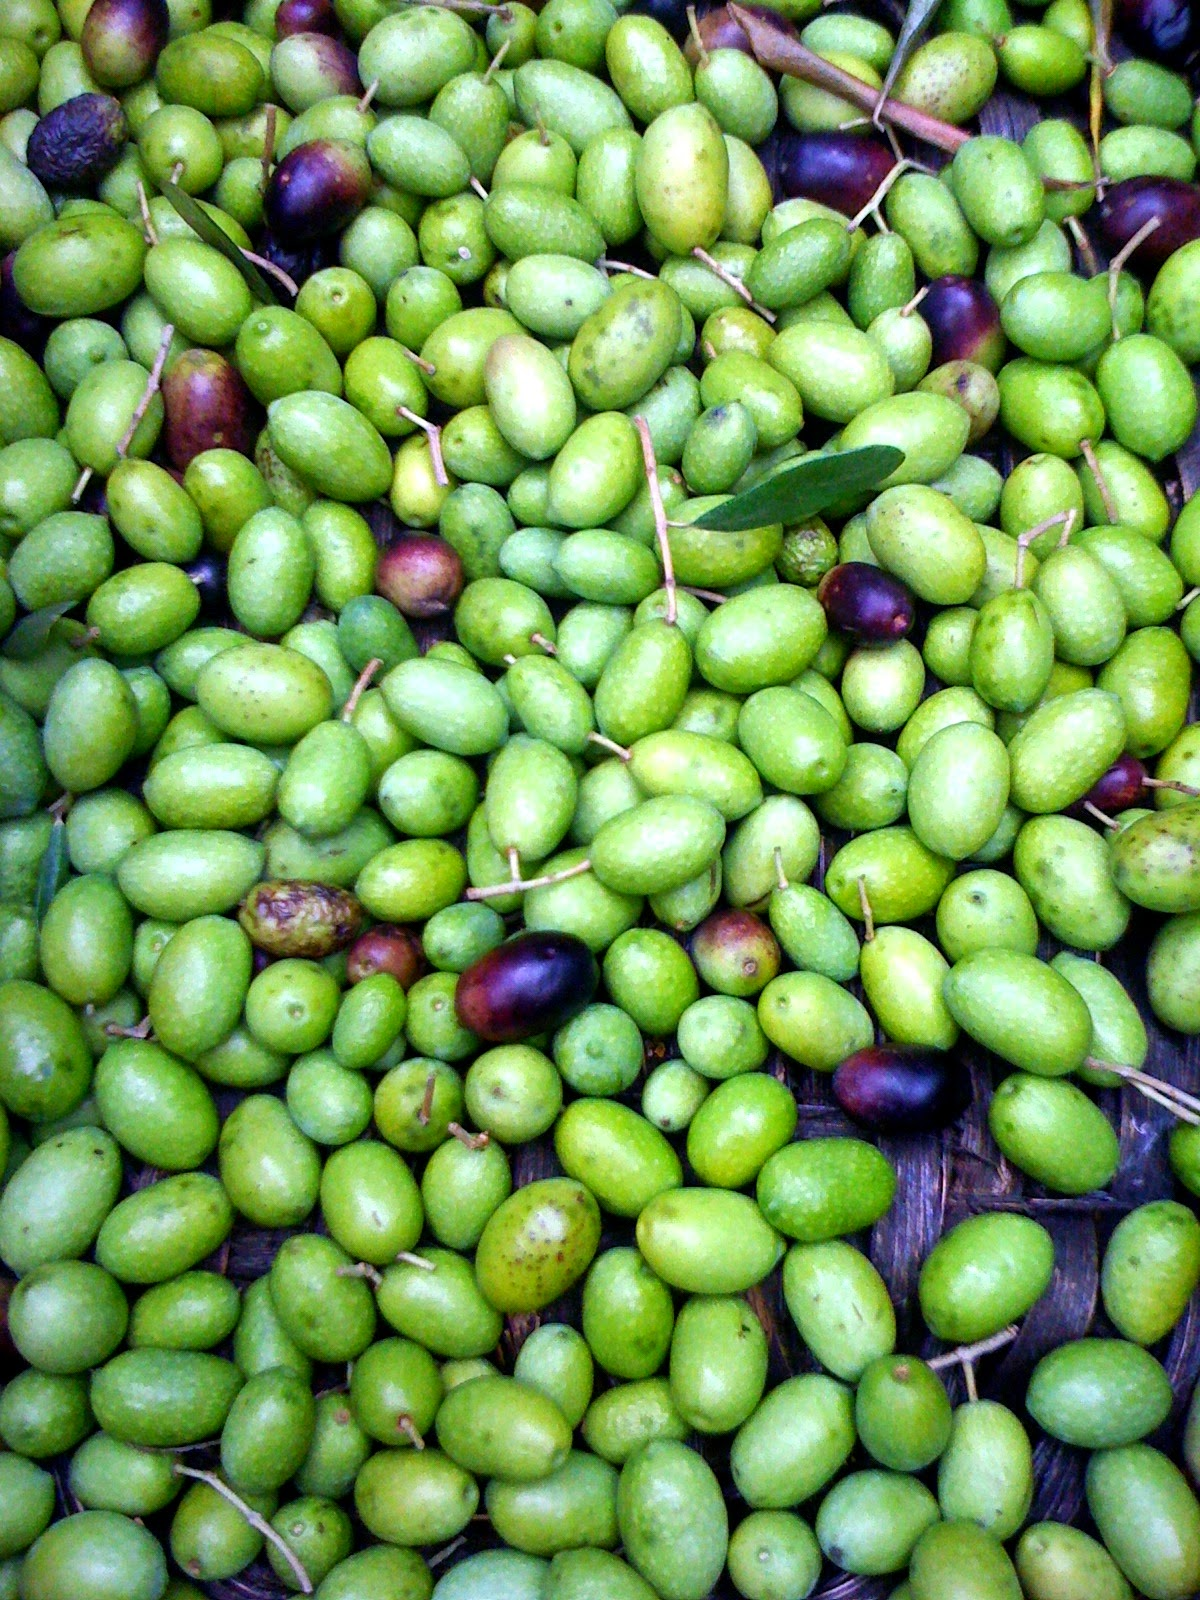 picking, treating and preserving olives in brine, and olives marinated in olive oil and herbs